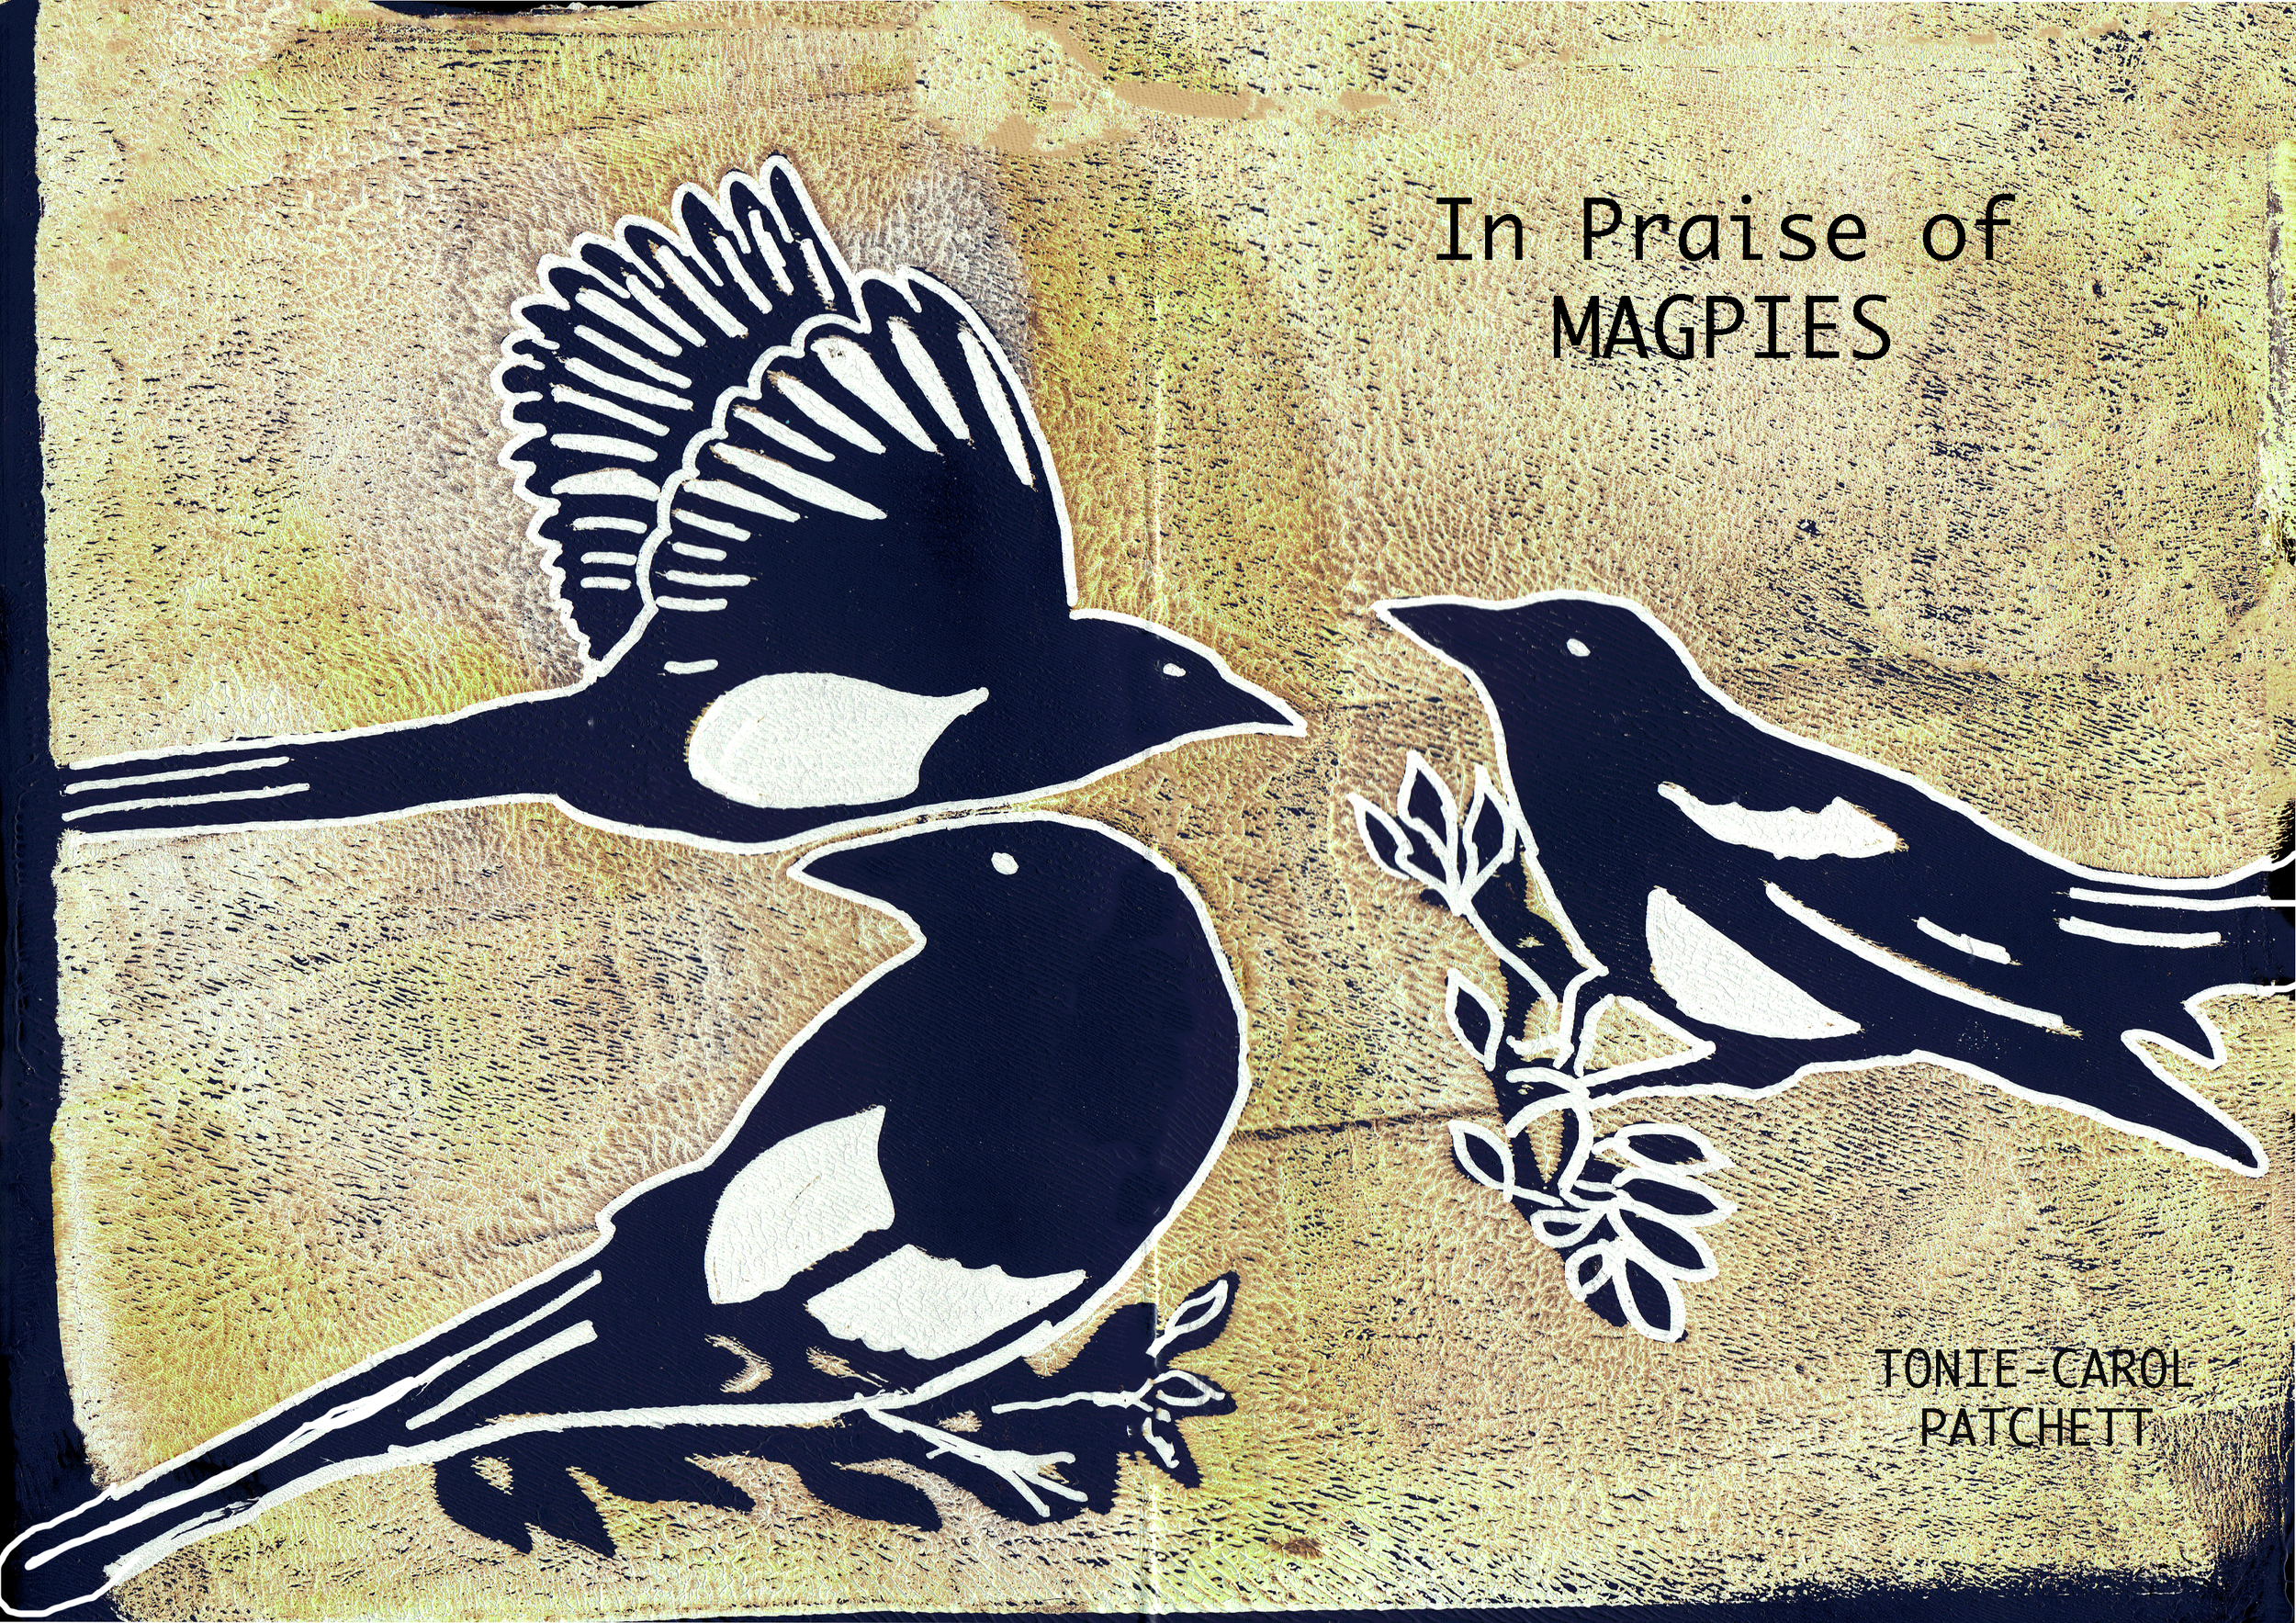 Cover of Booklet, Gelli print and Photoshop enhancement